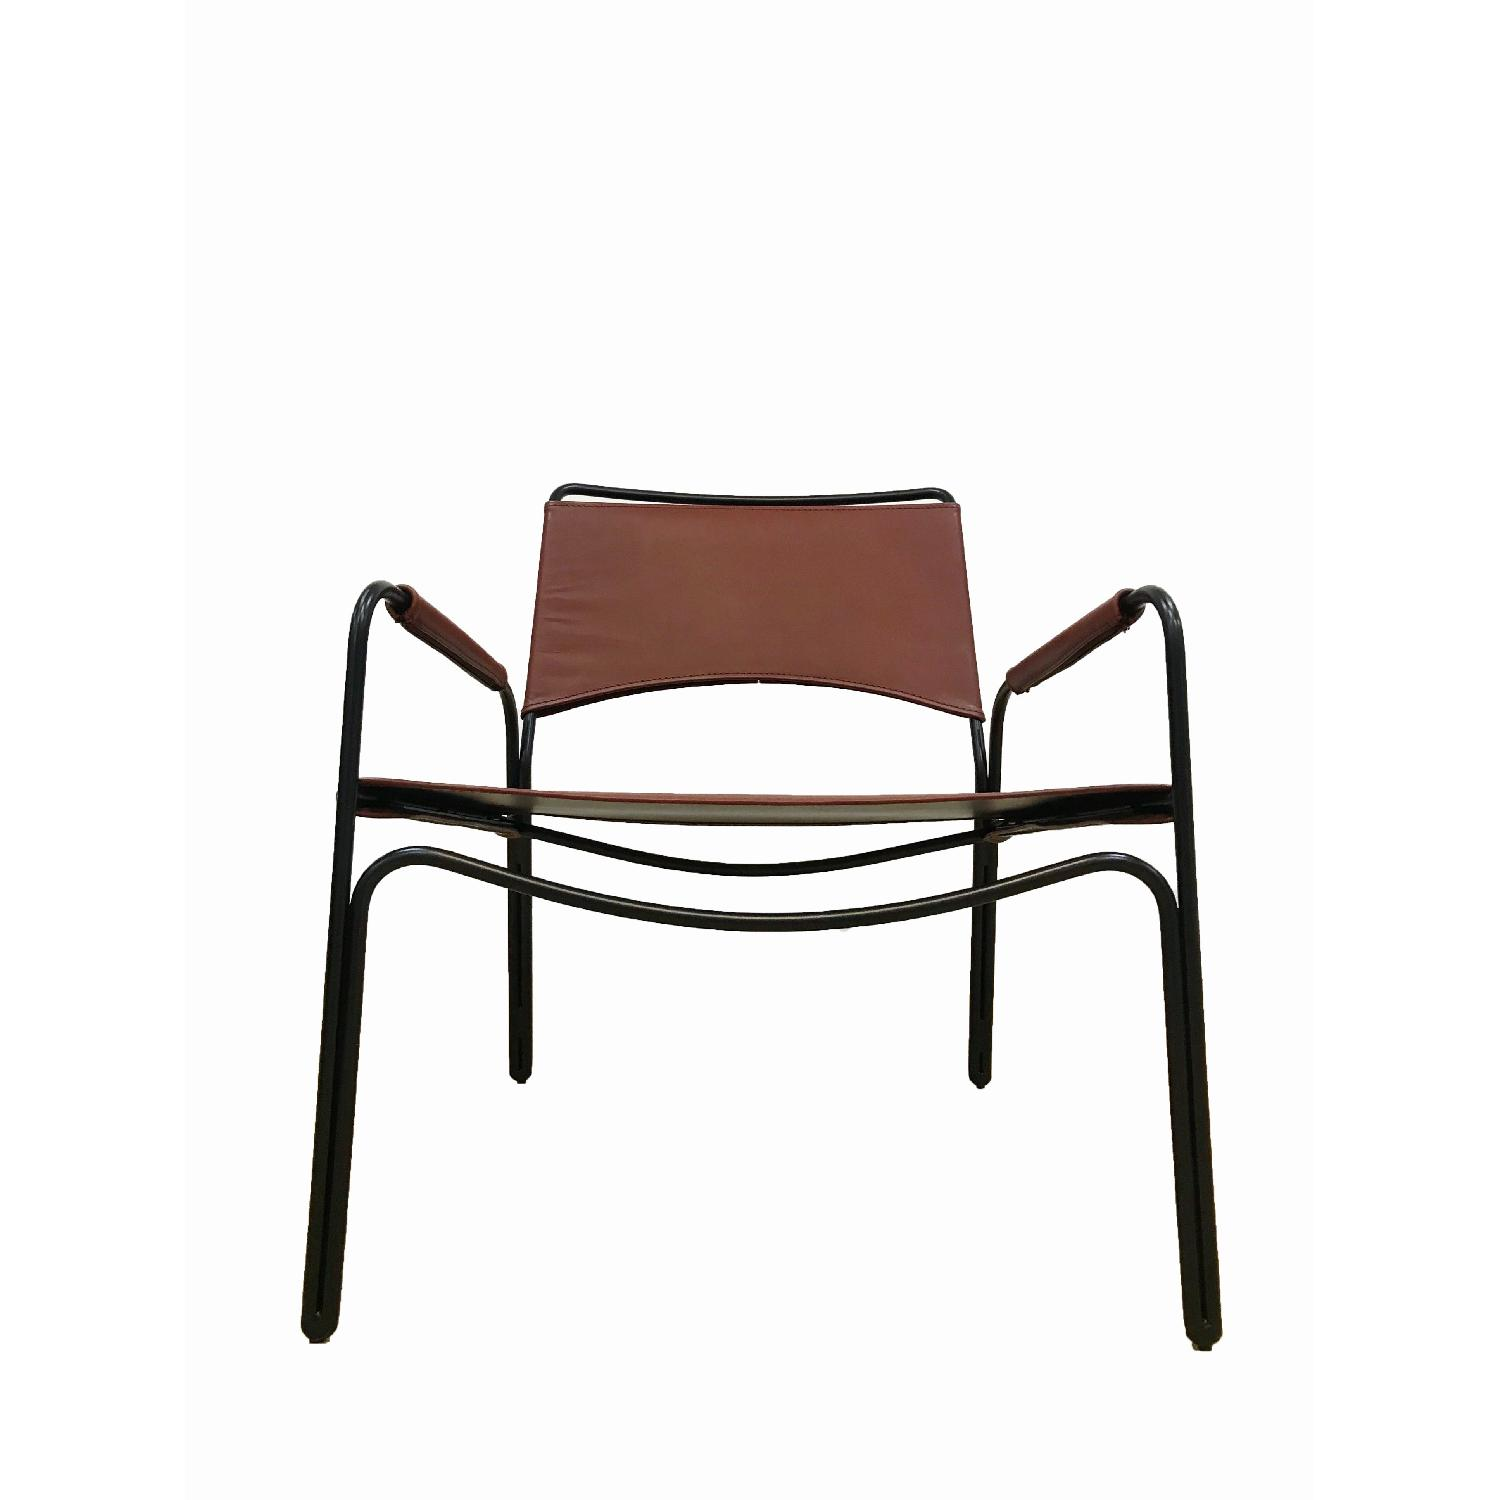 m.a.d Furniture Design Trace Lounge Chair - image-0